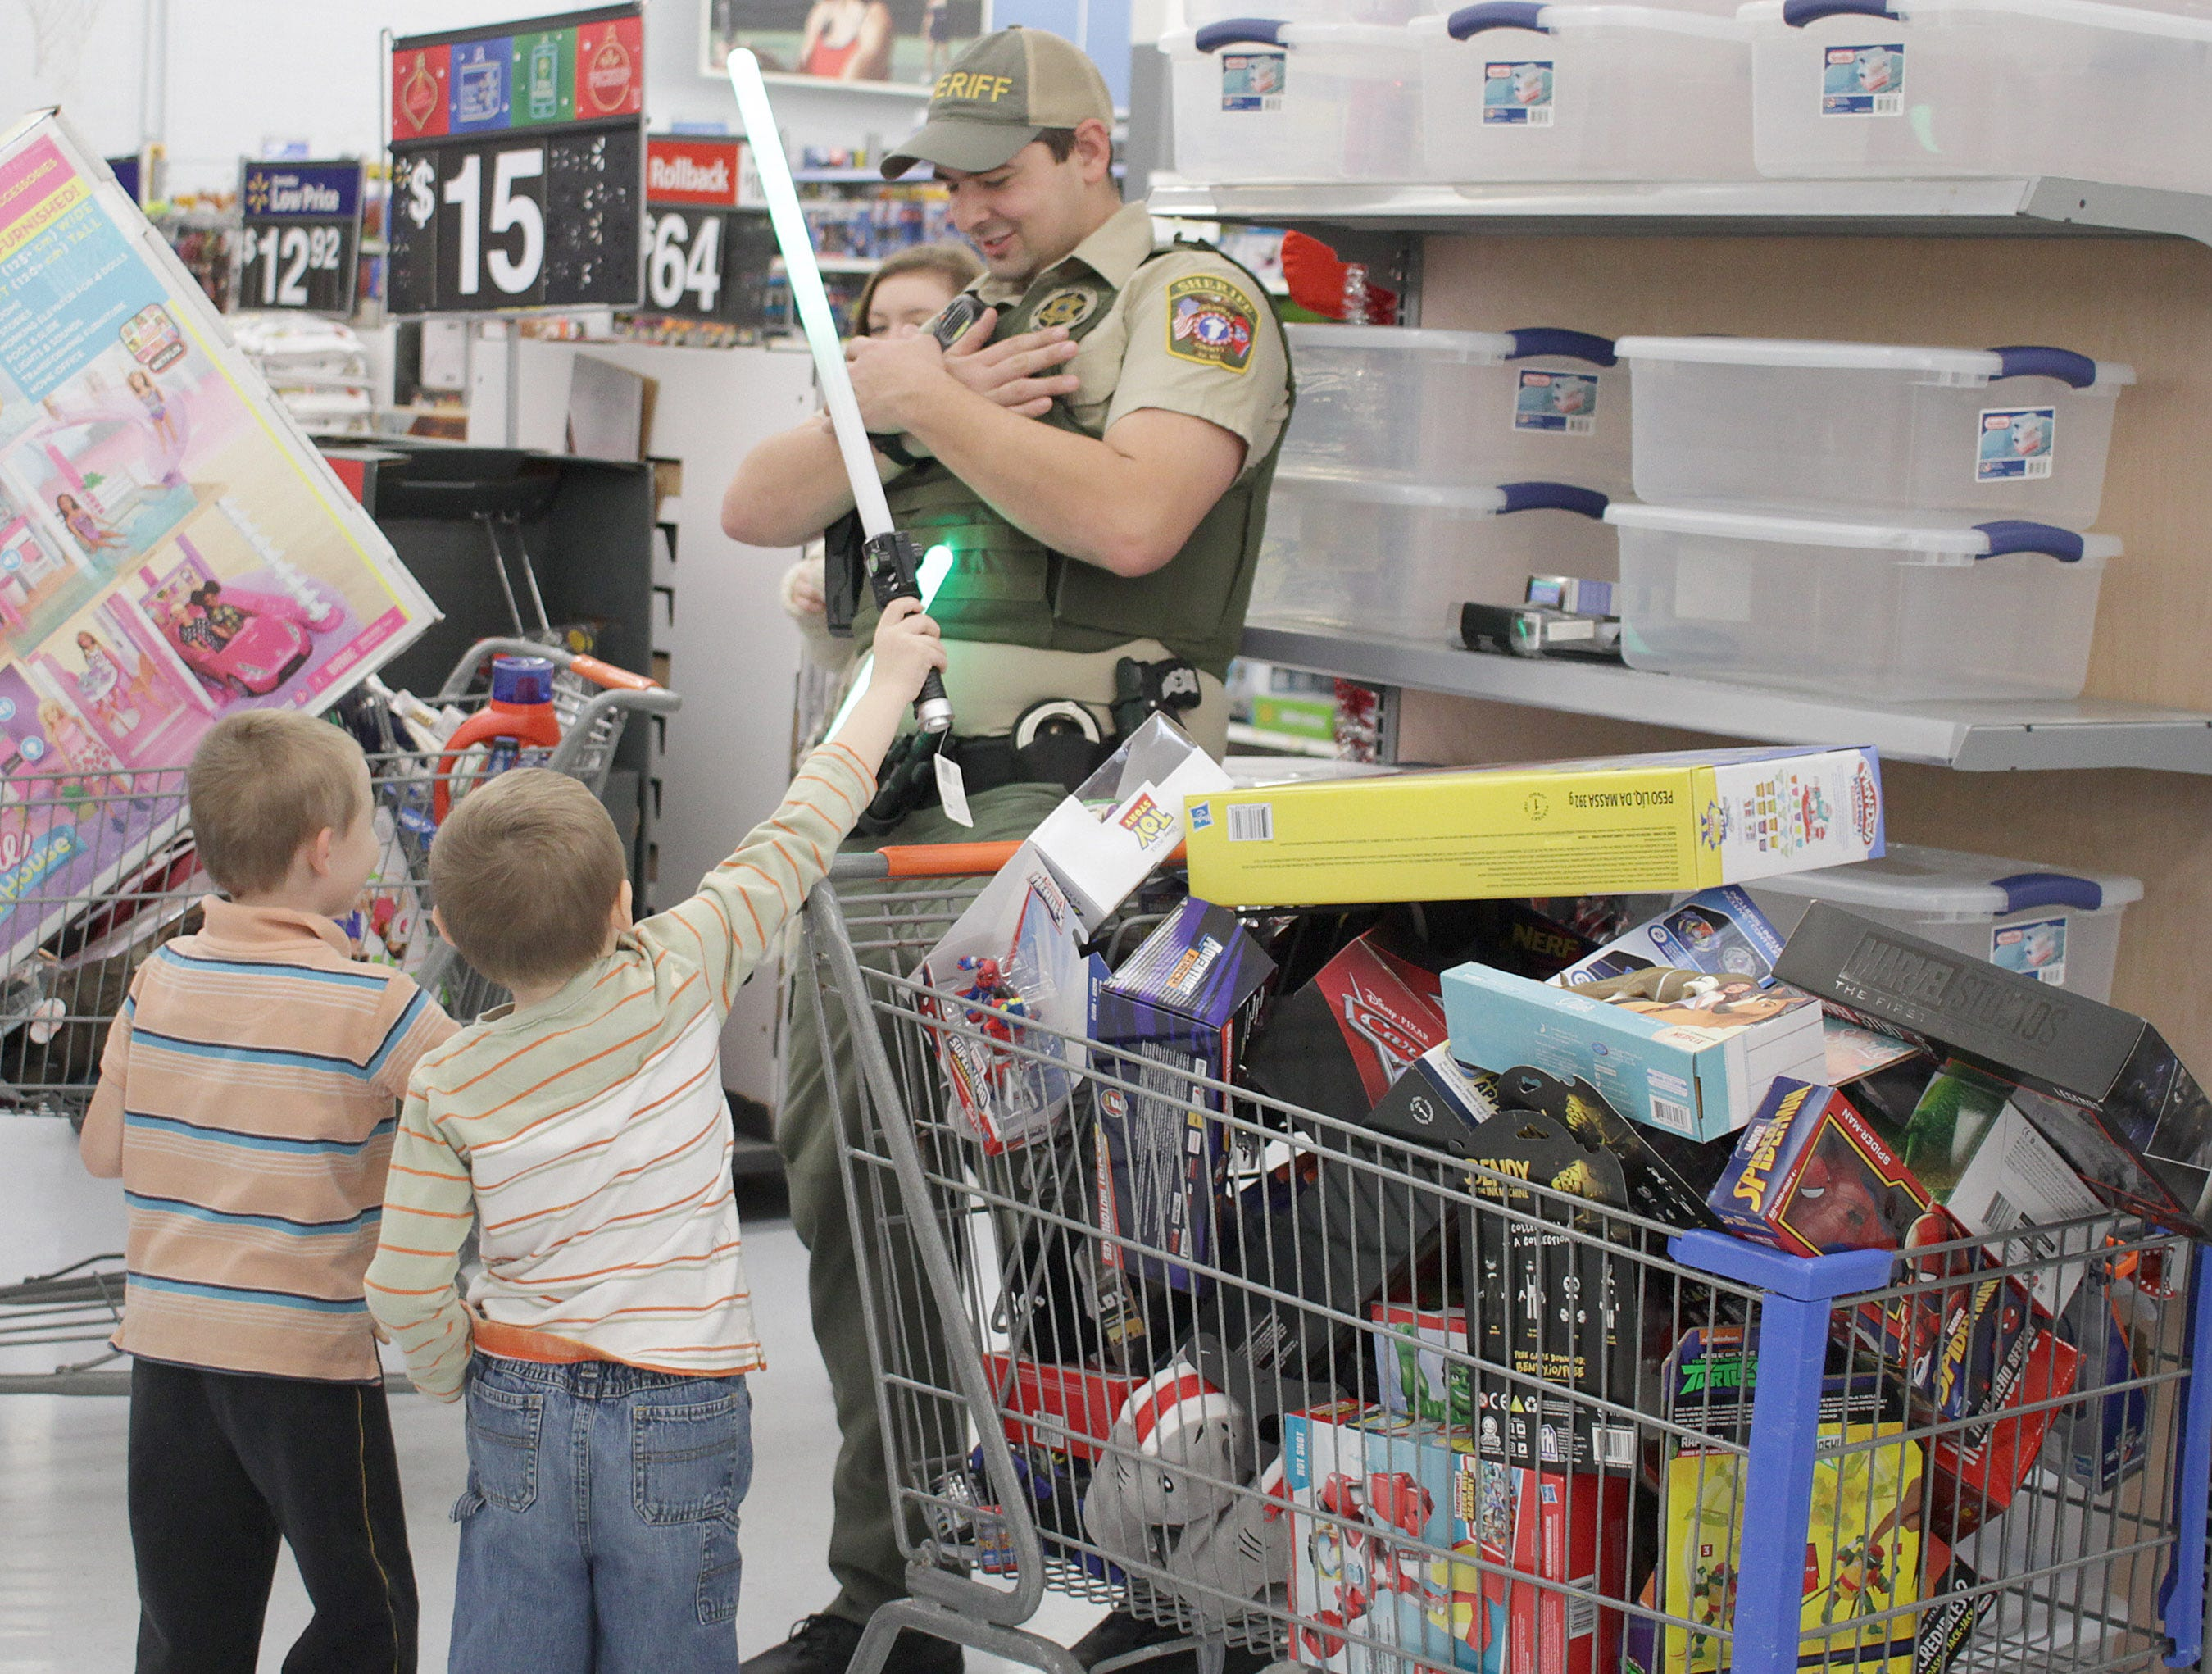 Twins Travis and Steven Jones attack Officer Brandon Scruggs with light sabers during Shop with a Cop in Ashland City on Saturday, December 15, 2018.